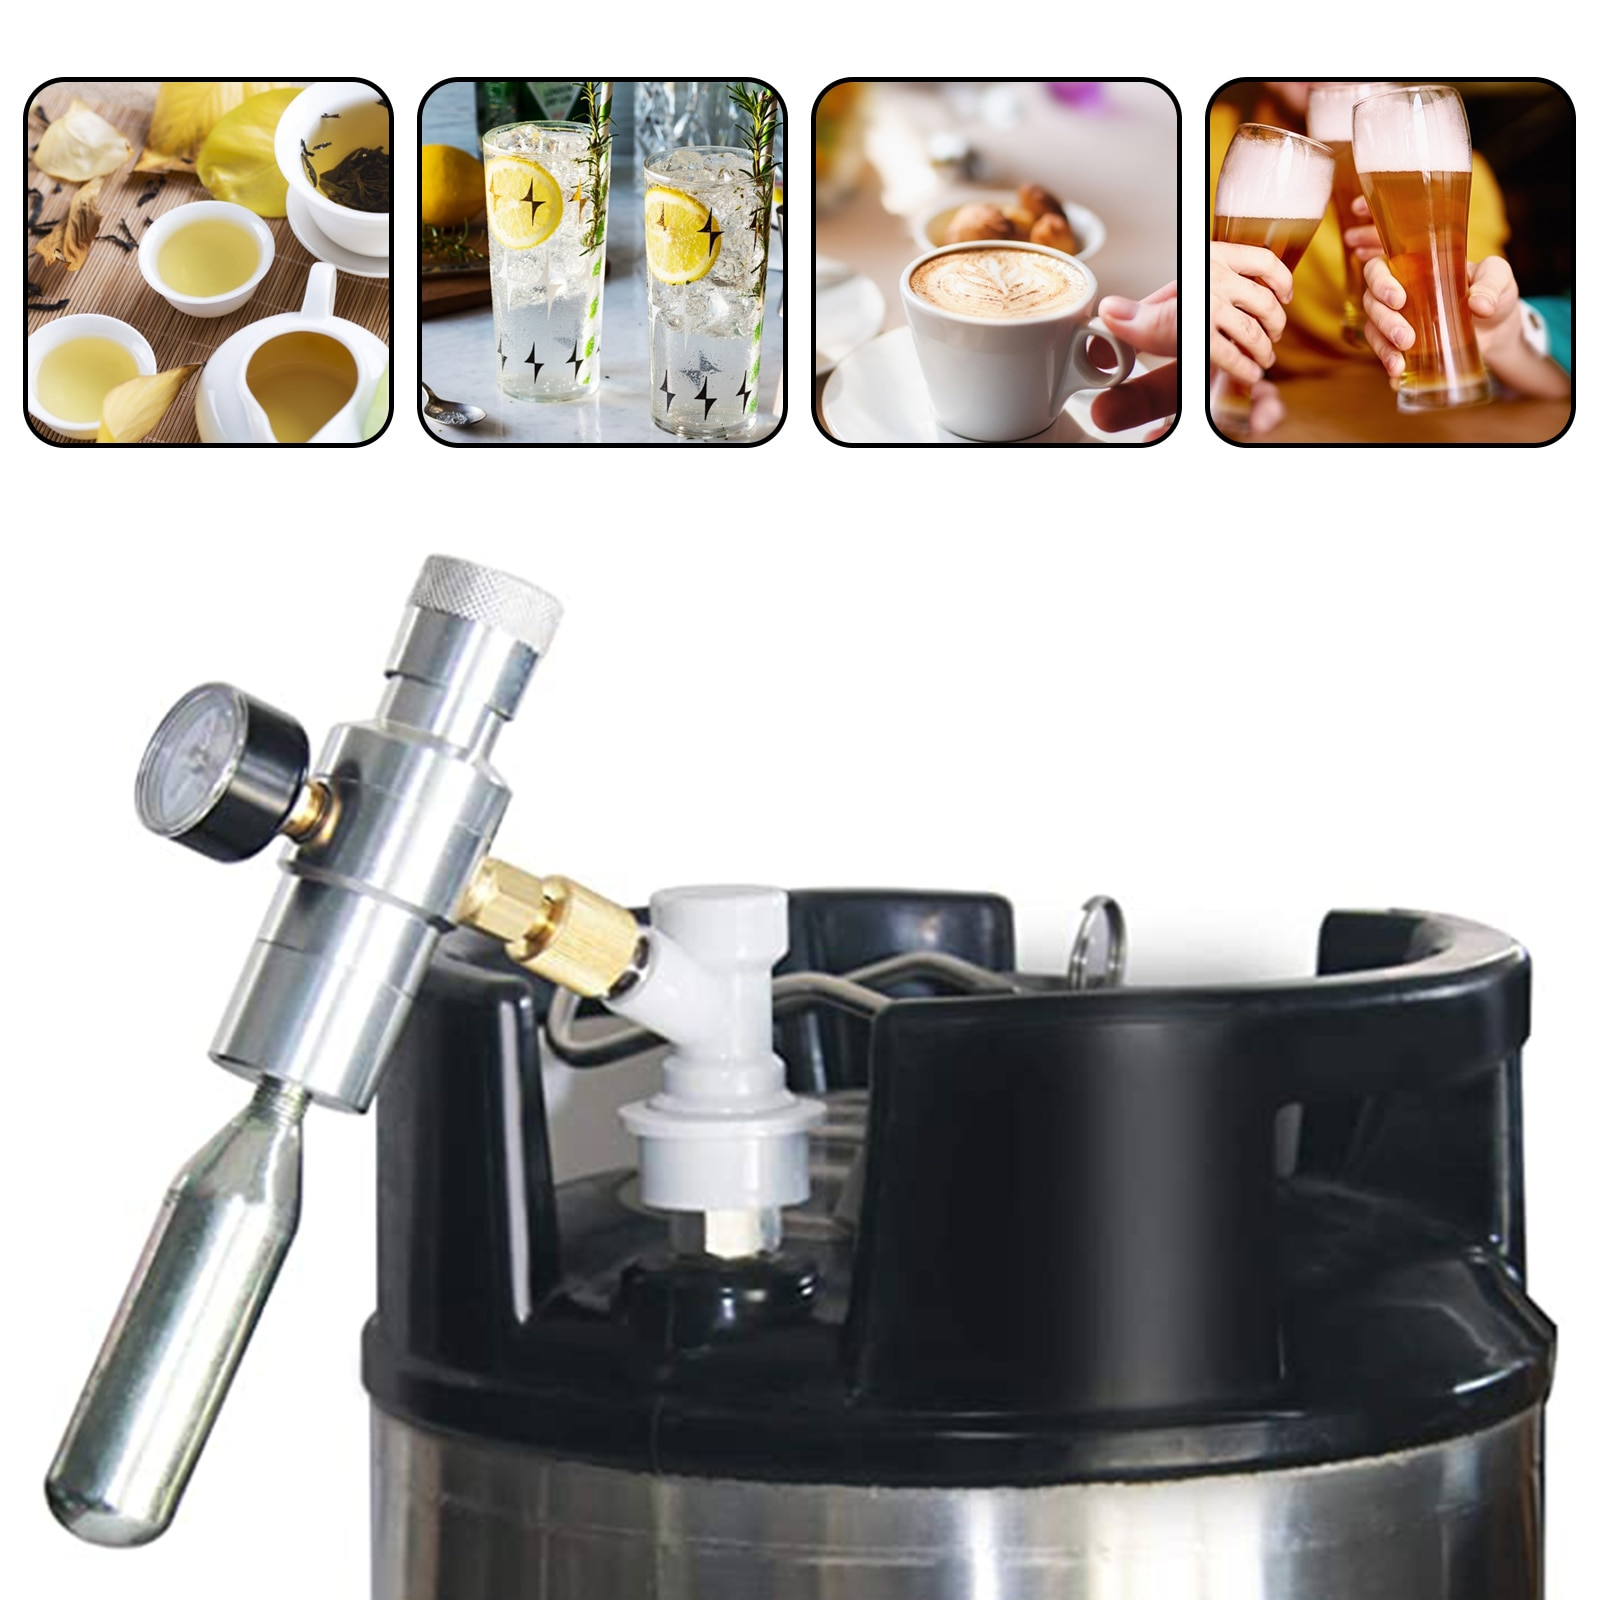 2 In 1 Sodastream CO2 Mini Gas Regulator CO2 Keg Charger 0-30 PSI For Home Draft Beer Brewing